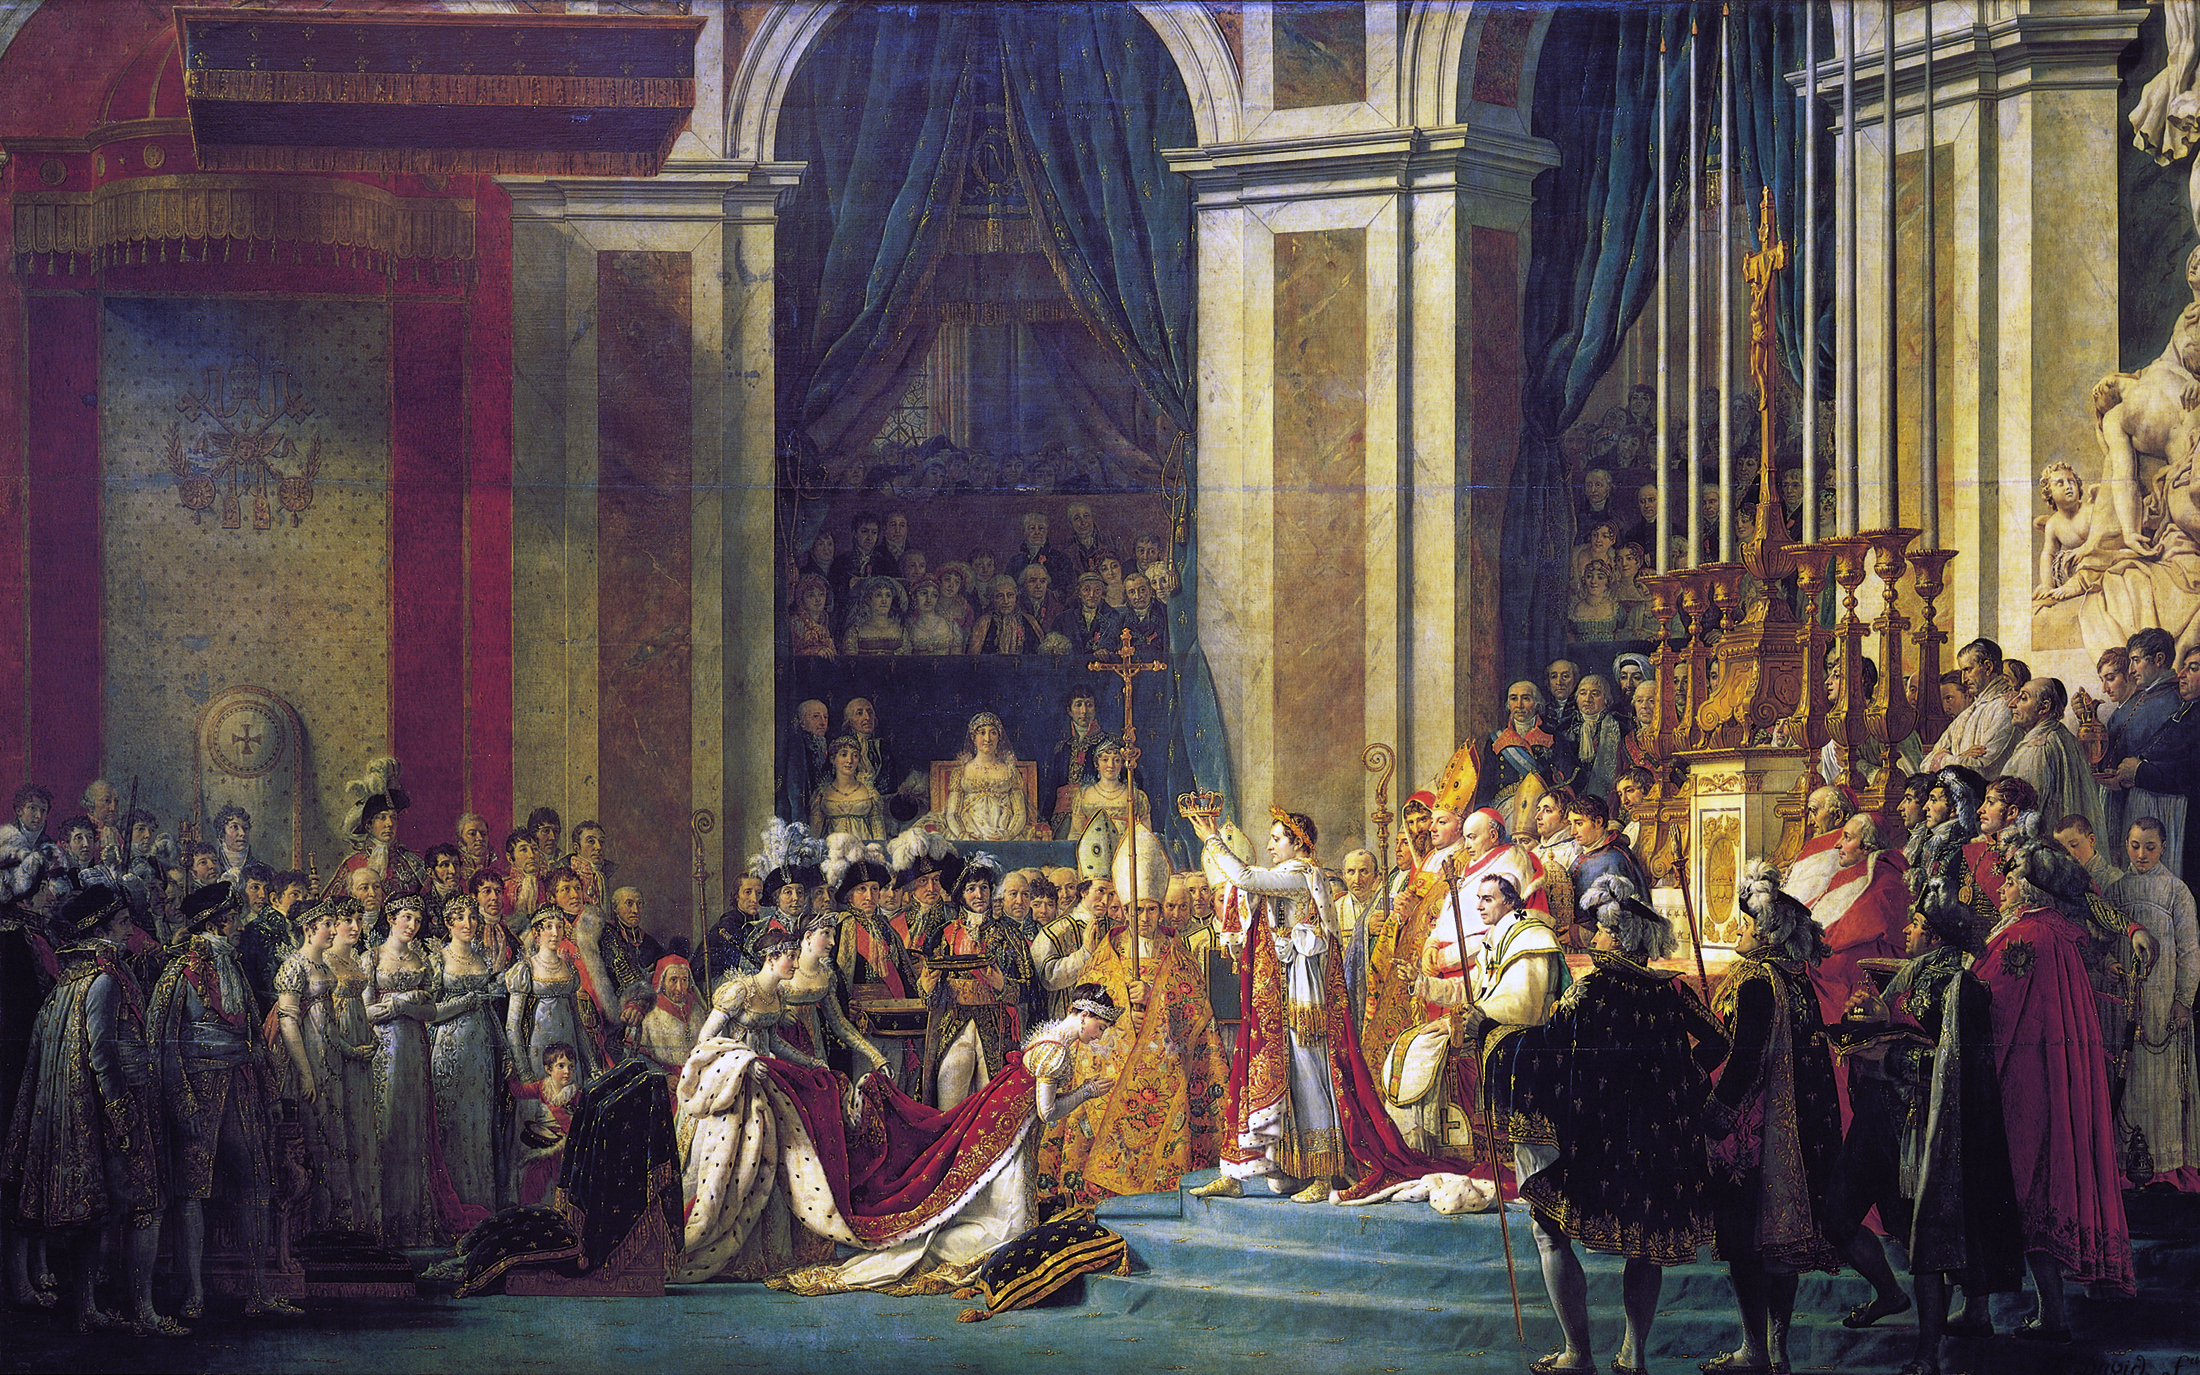 The Coronation of Napoleon by Jacques-Louis David, circa 1805-1807